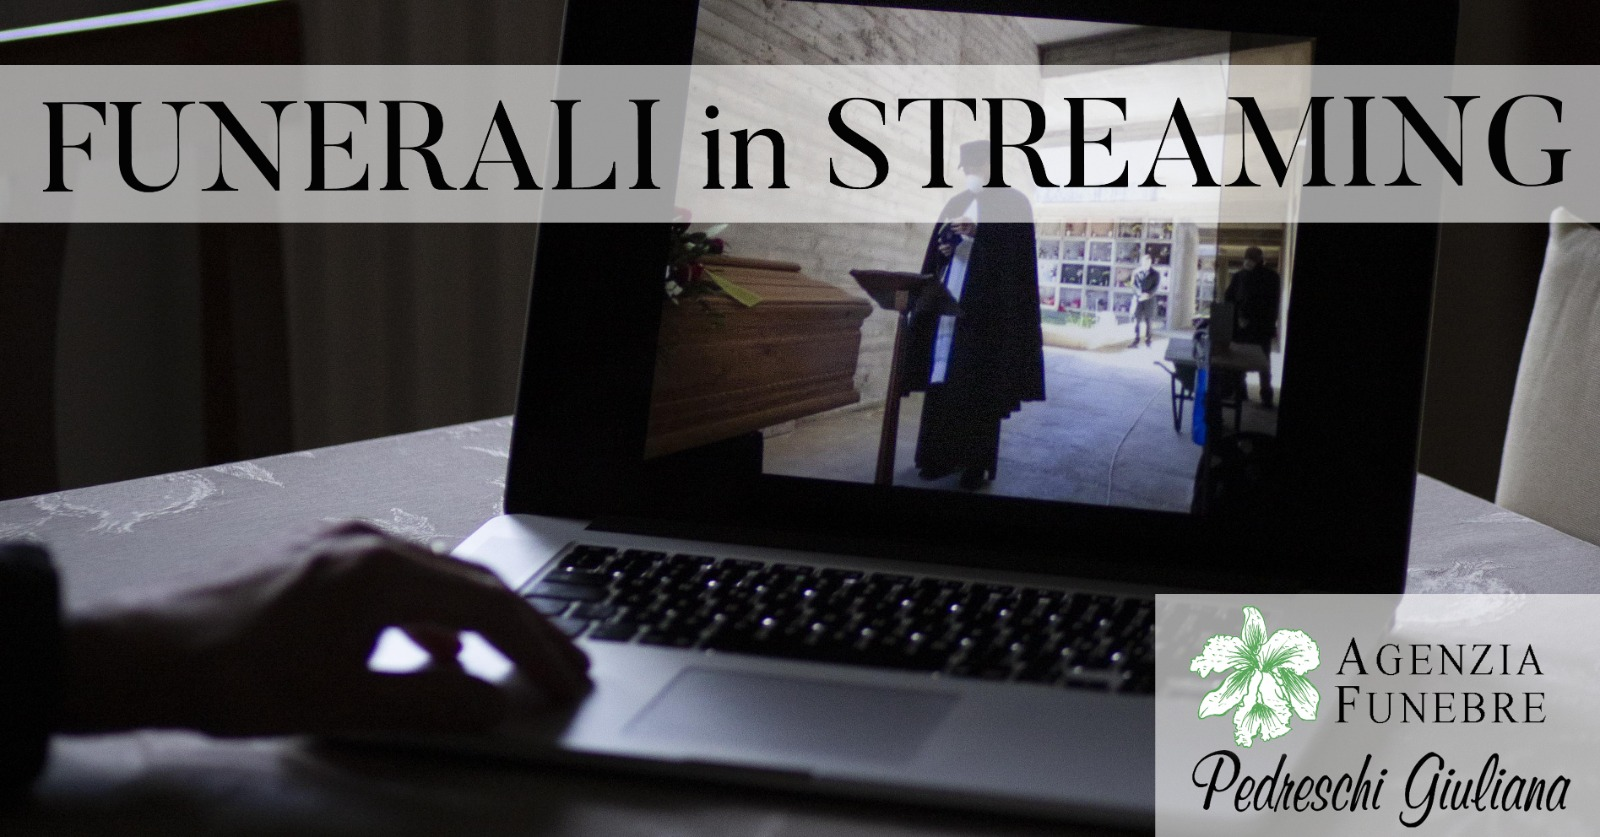 Funerali in streaming